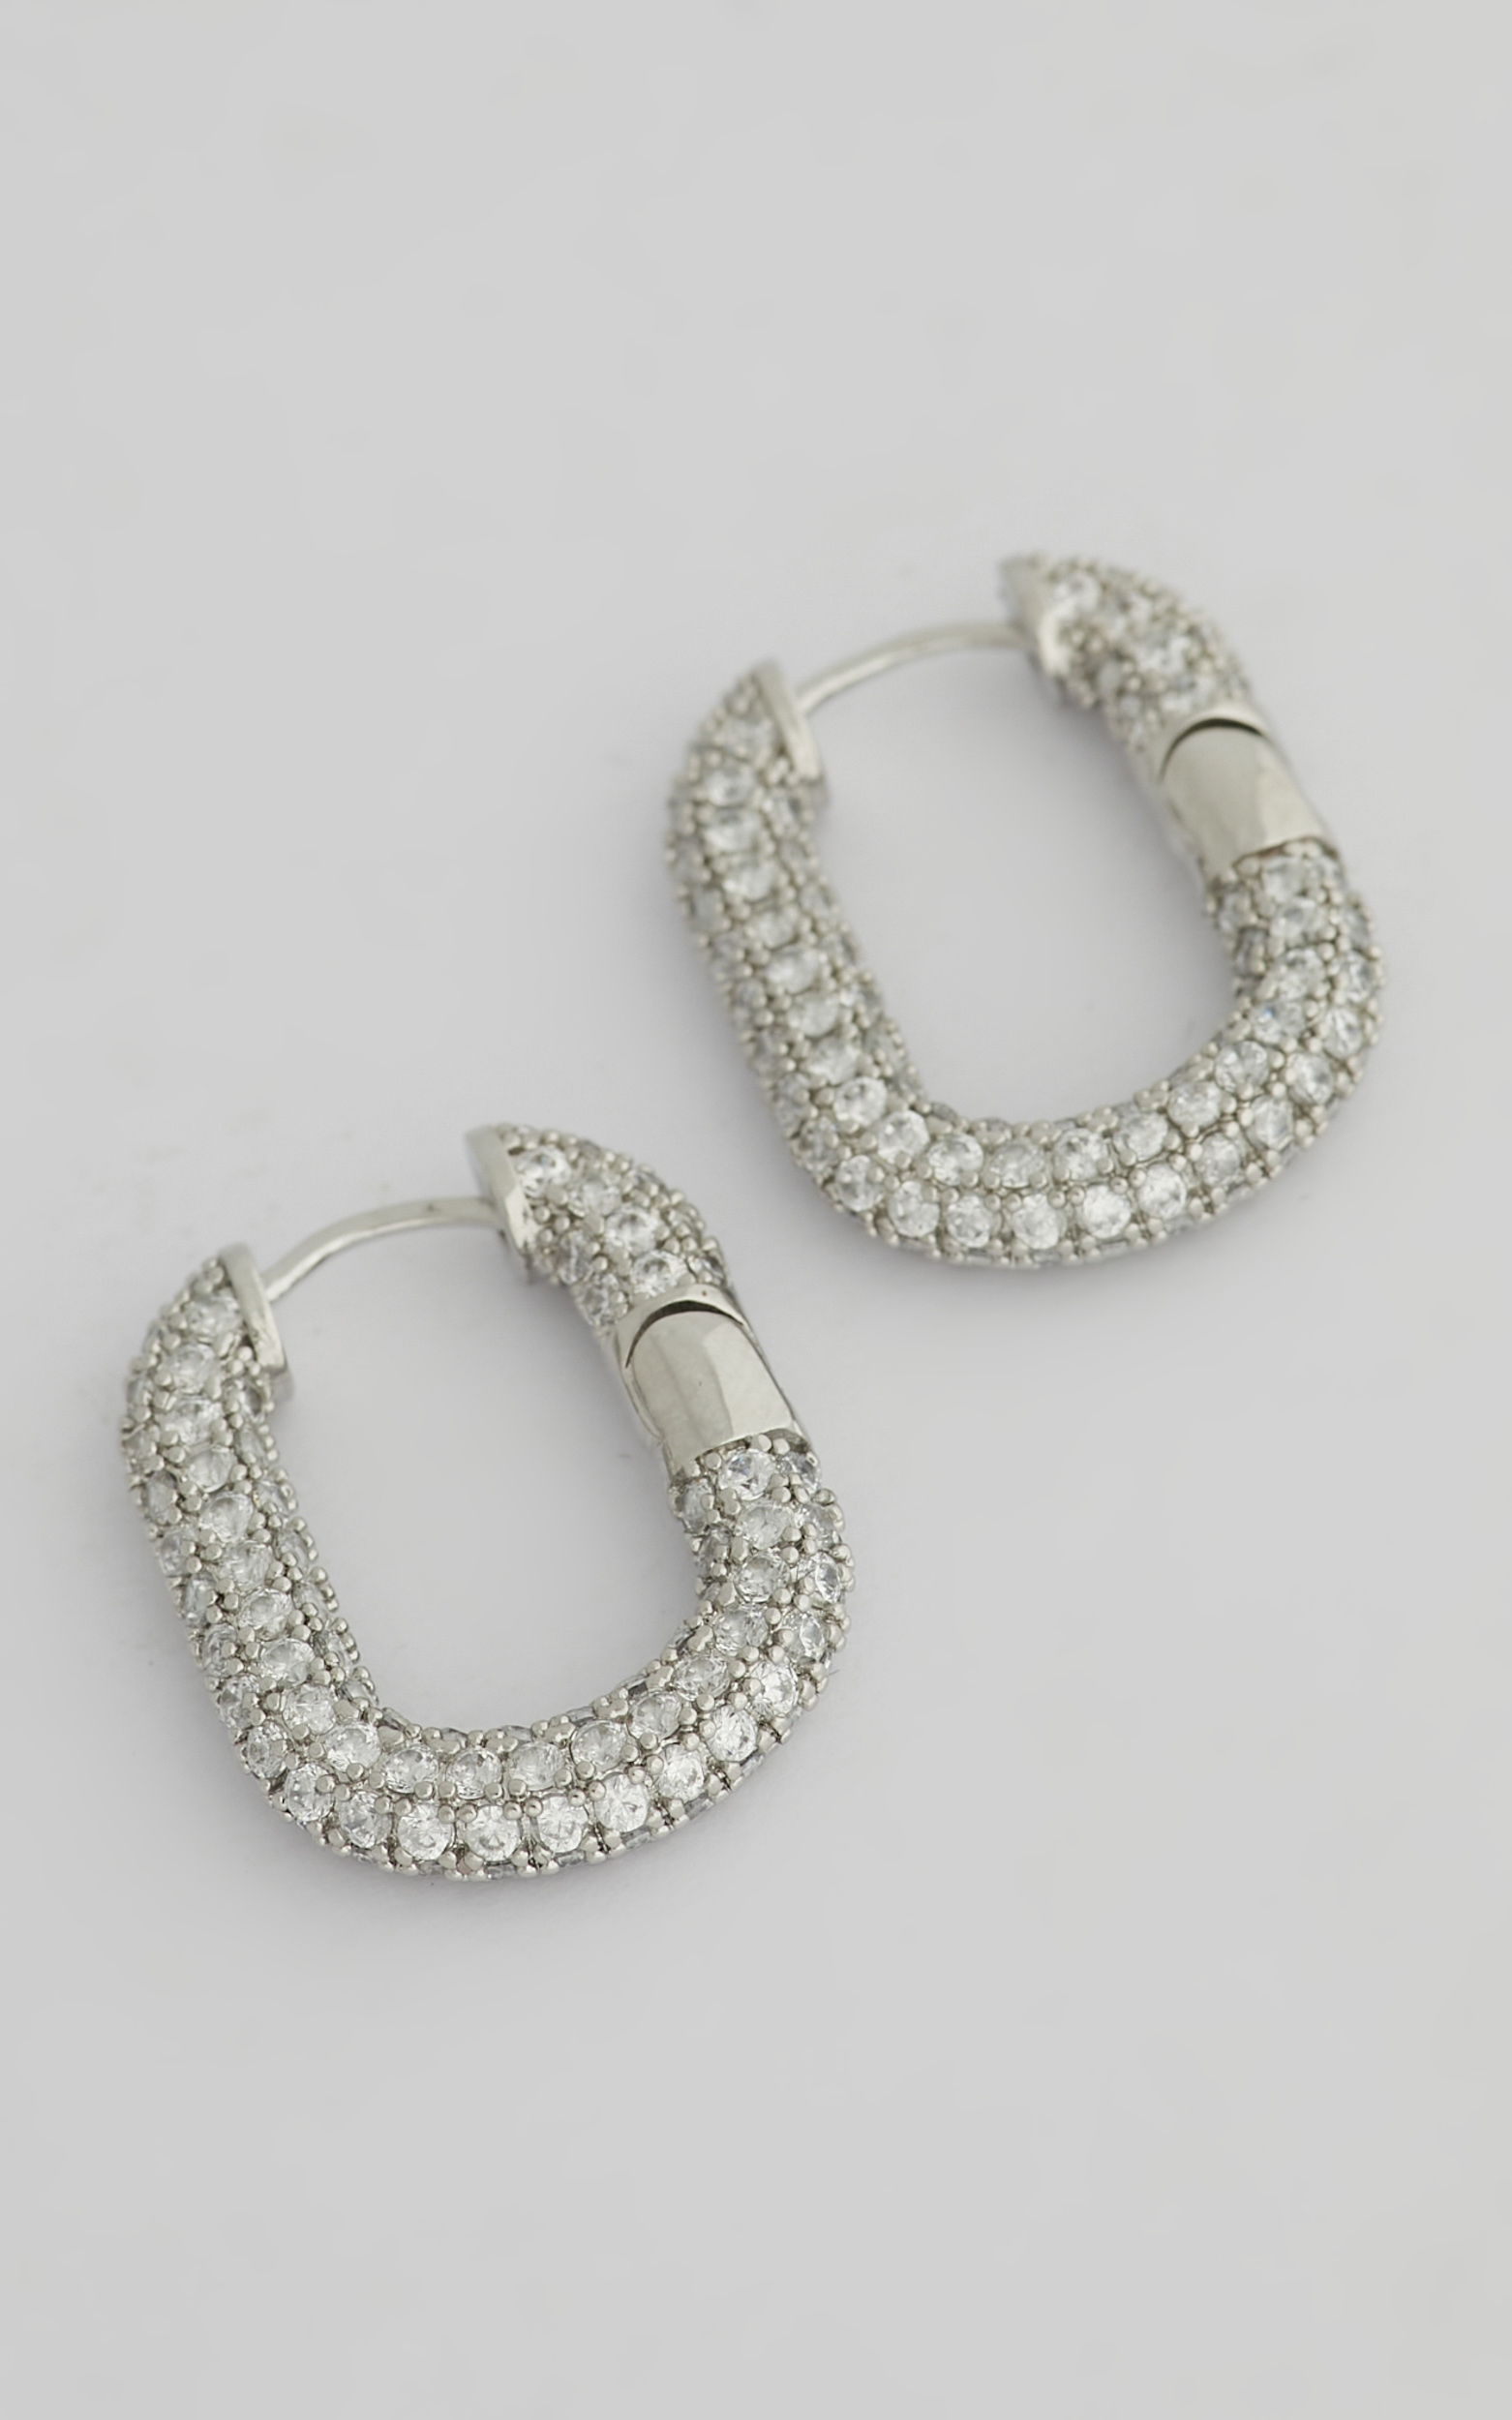 Luv AJ - XL Pave Chain Link Hoops in Silver - NoSize, SLV2, hi-res image number null